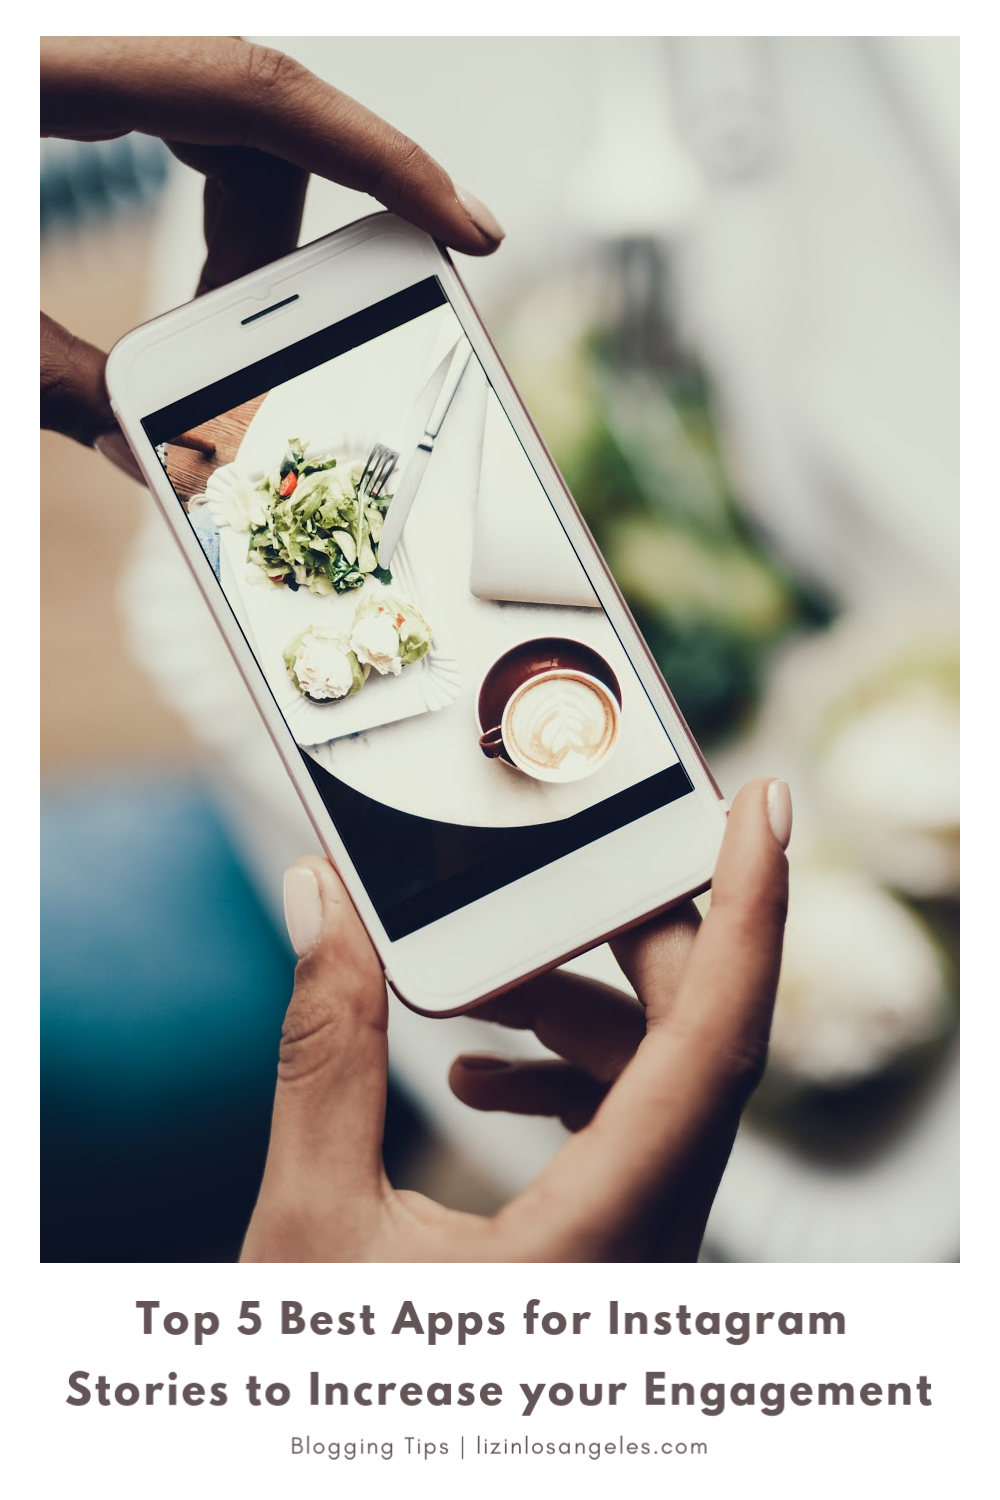 Top 5 Best Apps for Instagram Stories to Increase your Engagement, a blog post by Liz in Los Angeles, Los Angeles Lifestyle Blogger, an image of a iPhone taking picture of food